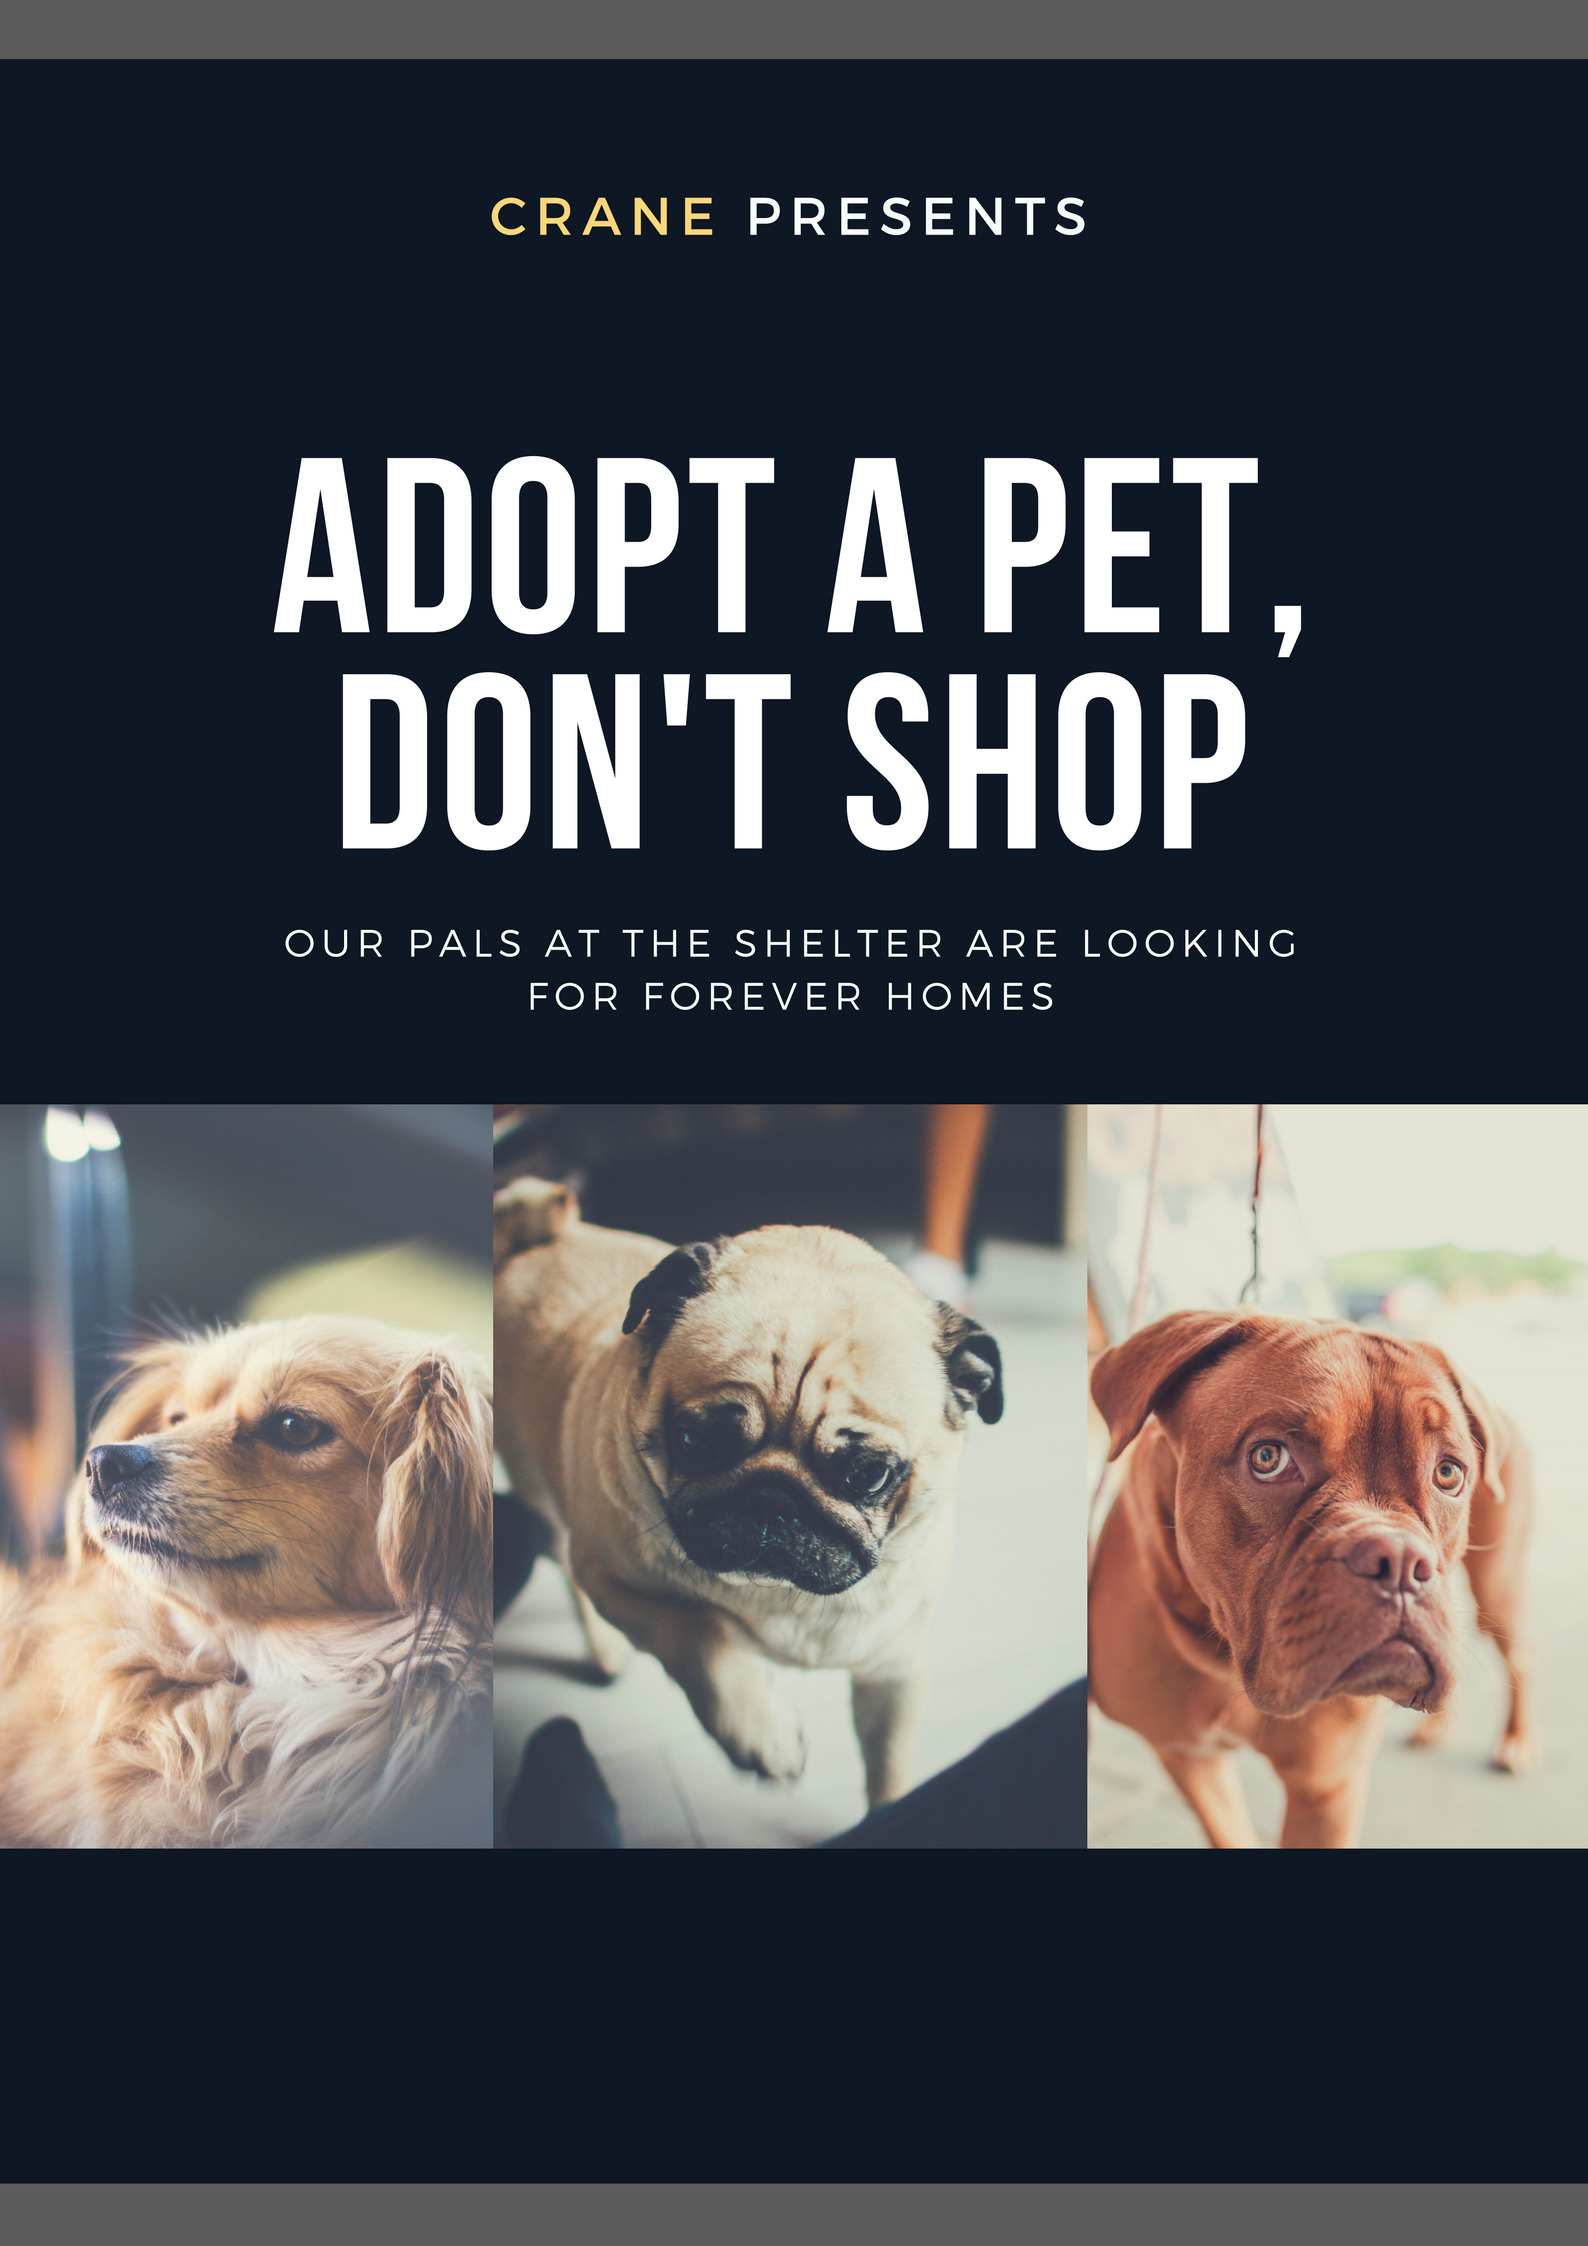 Would you like to have a companion? One that will love you unconditionally and will always stay cute and cuddly? Come meet some furry friends on our visit to the animal shelter, and learn what we can do to help.